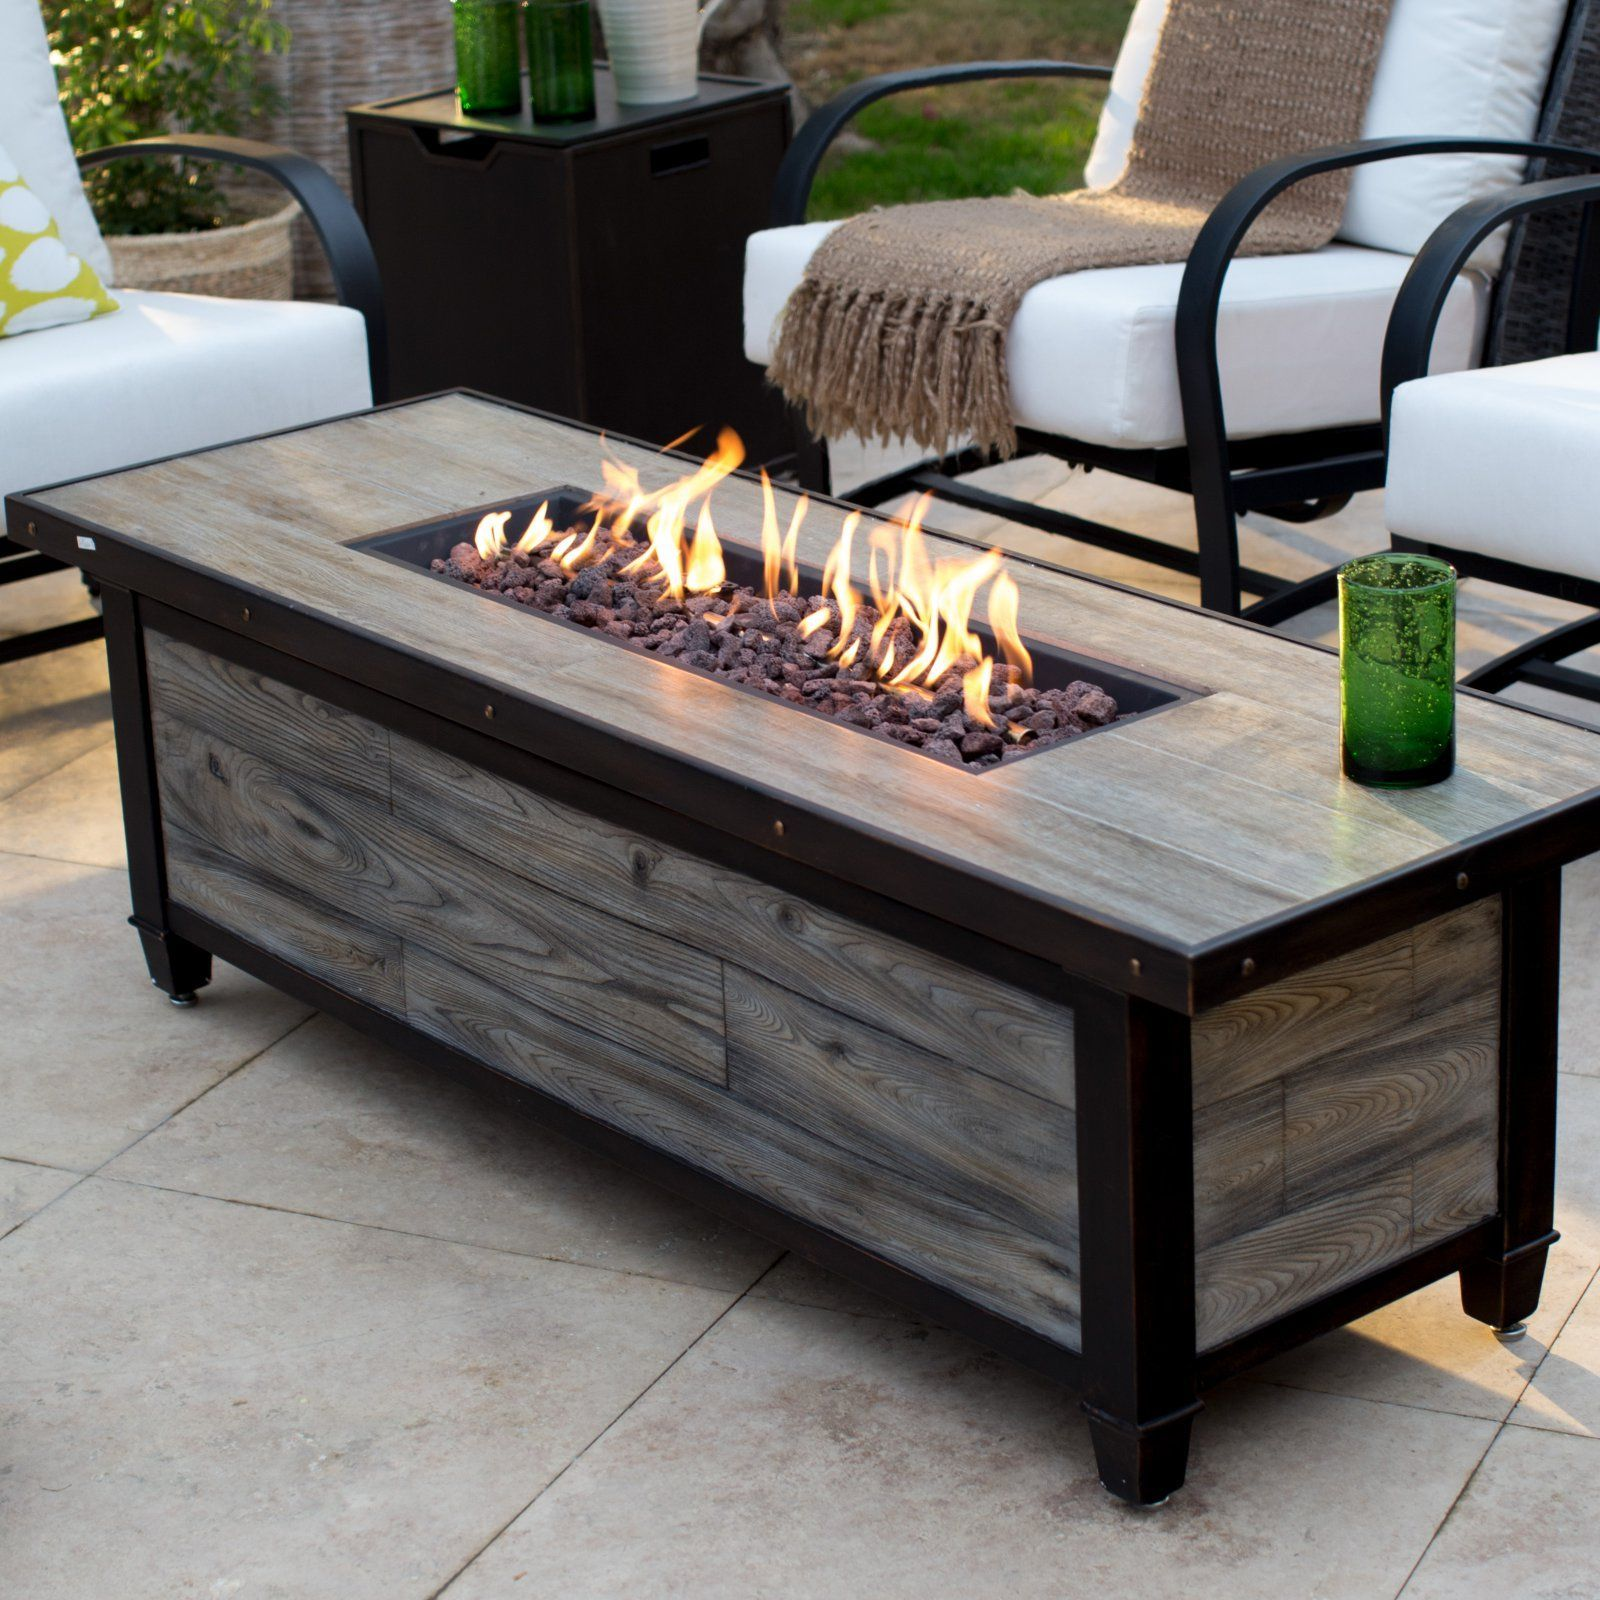 Pin On Deck Patio Fire Table Fire Pit Coffee Table Outdoor Fire Table [ 1600 x 1600 Pixel ]